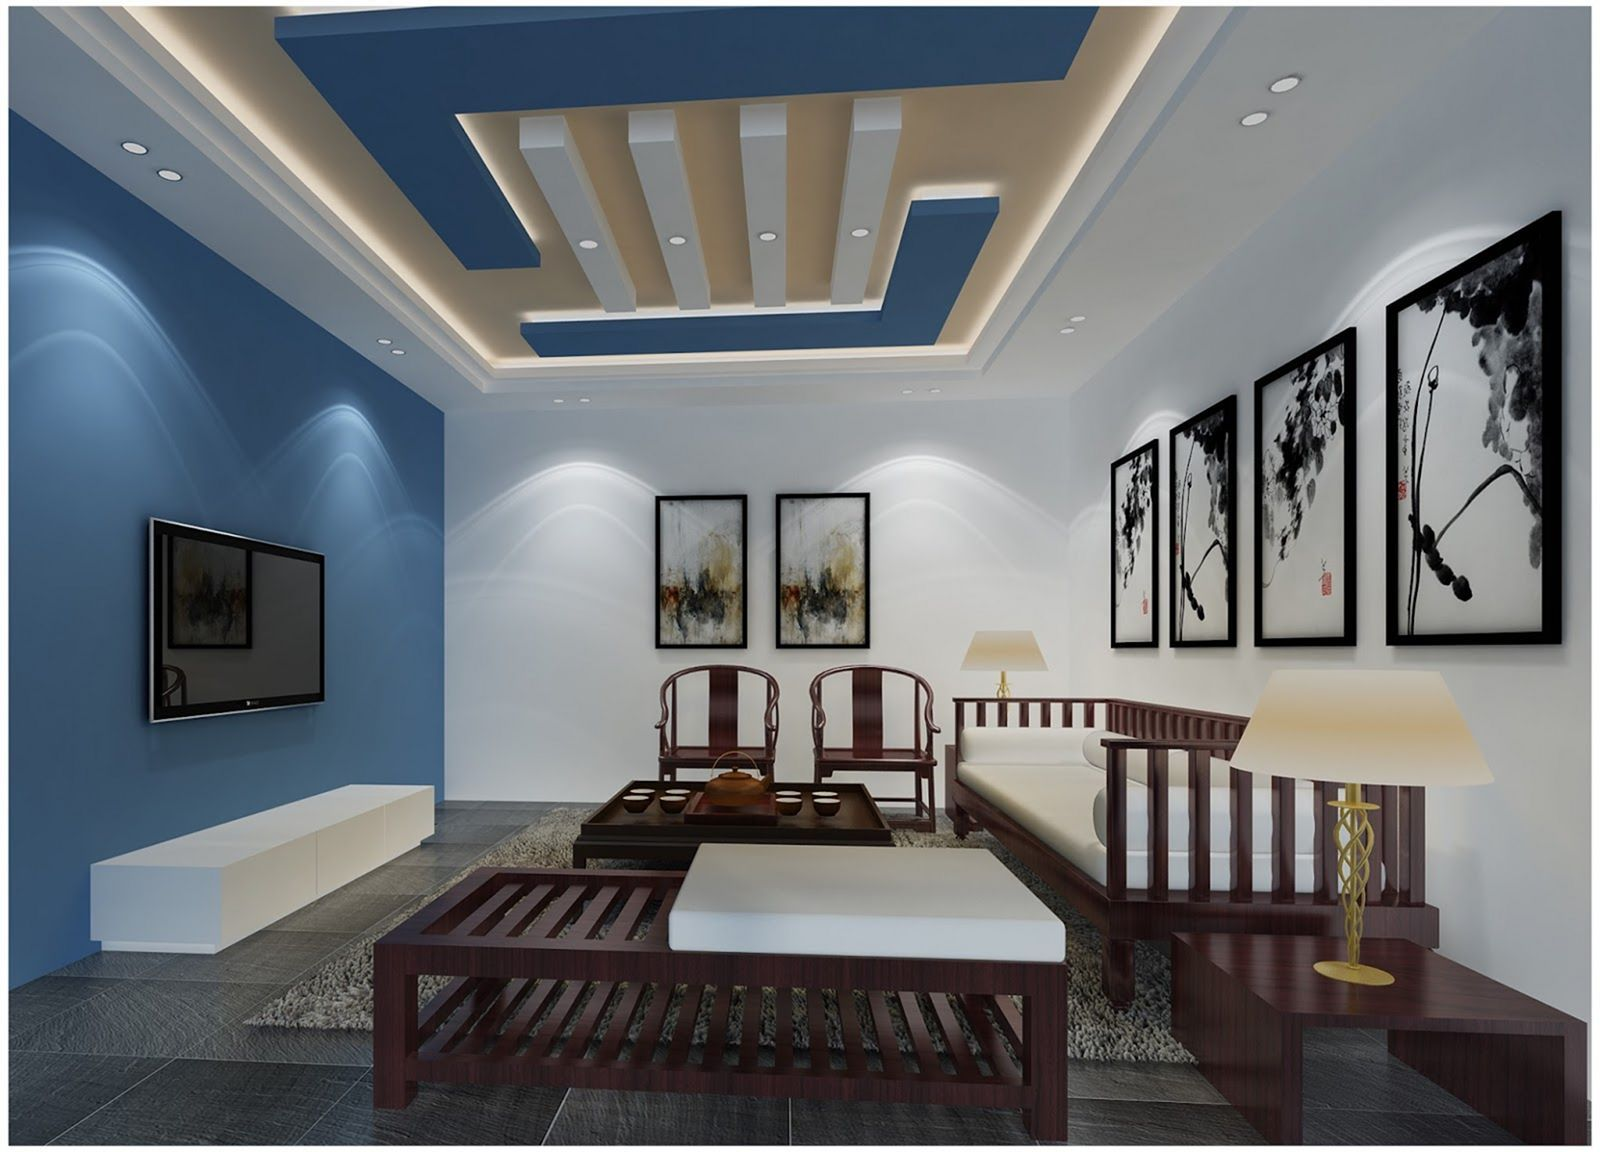 16 House ceiling model with an elegant and simple design ...